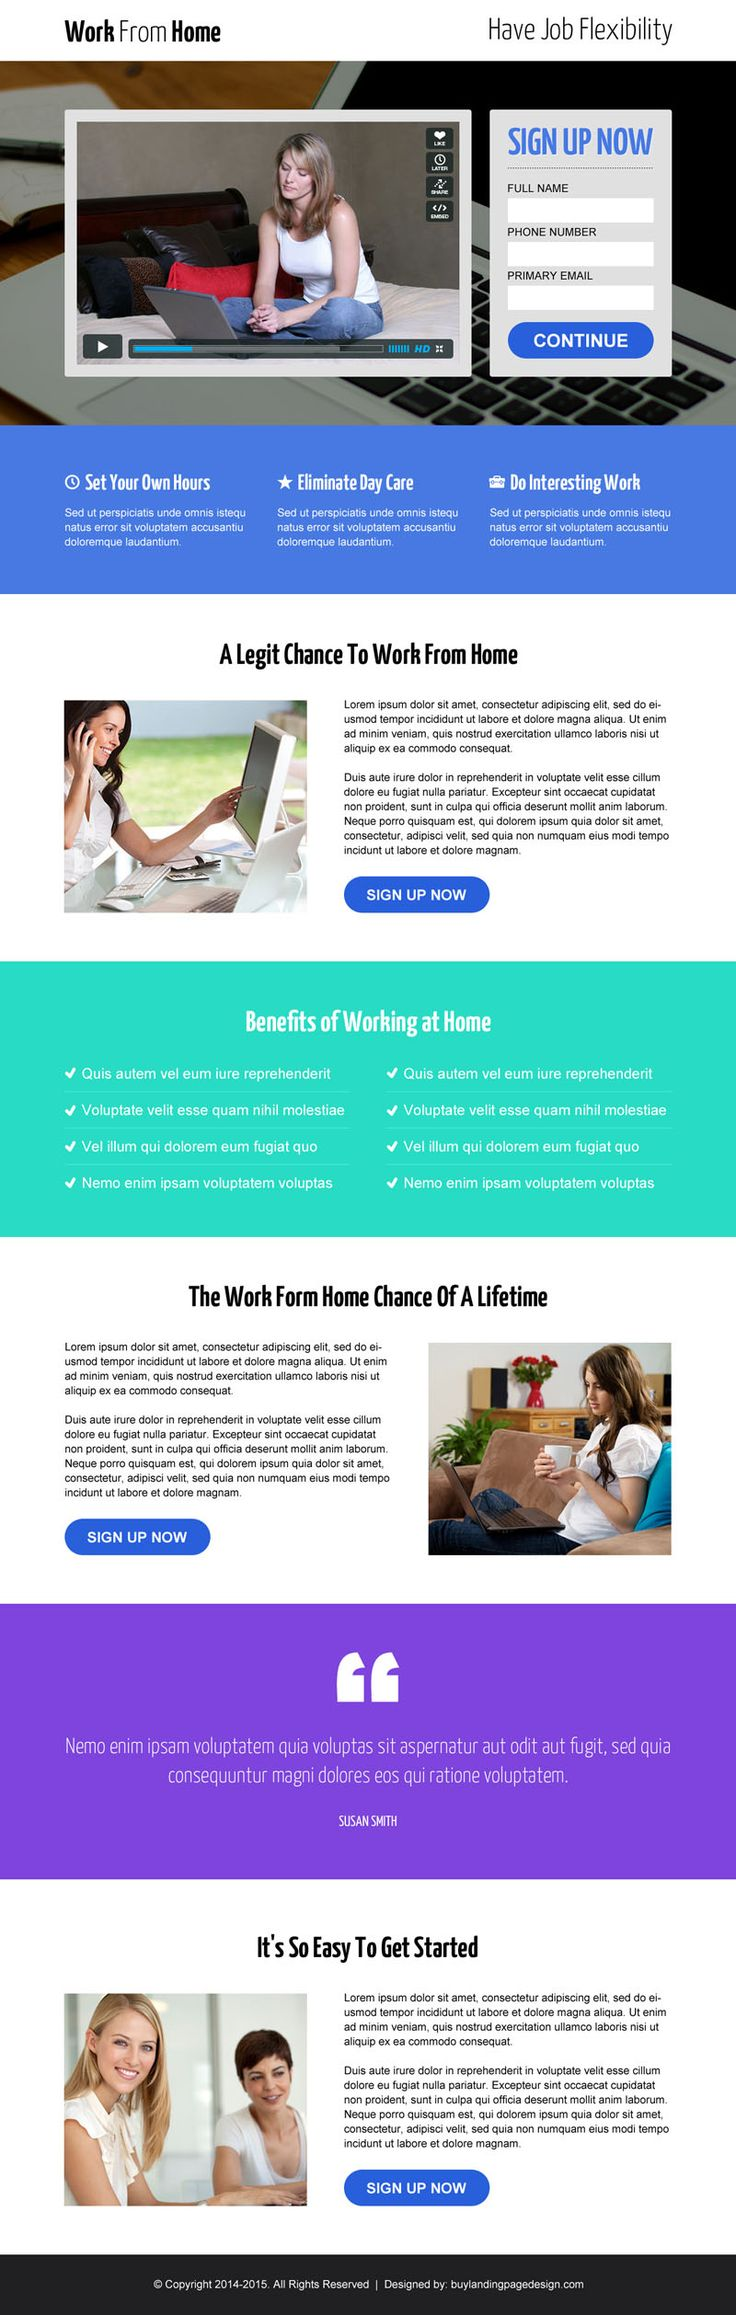 Download best converting mobile responsive landing page designs to boot you business conversion, leads & sales from https://www.buylandingpagedesign.com/responsive-landing-page-design/